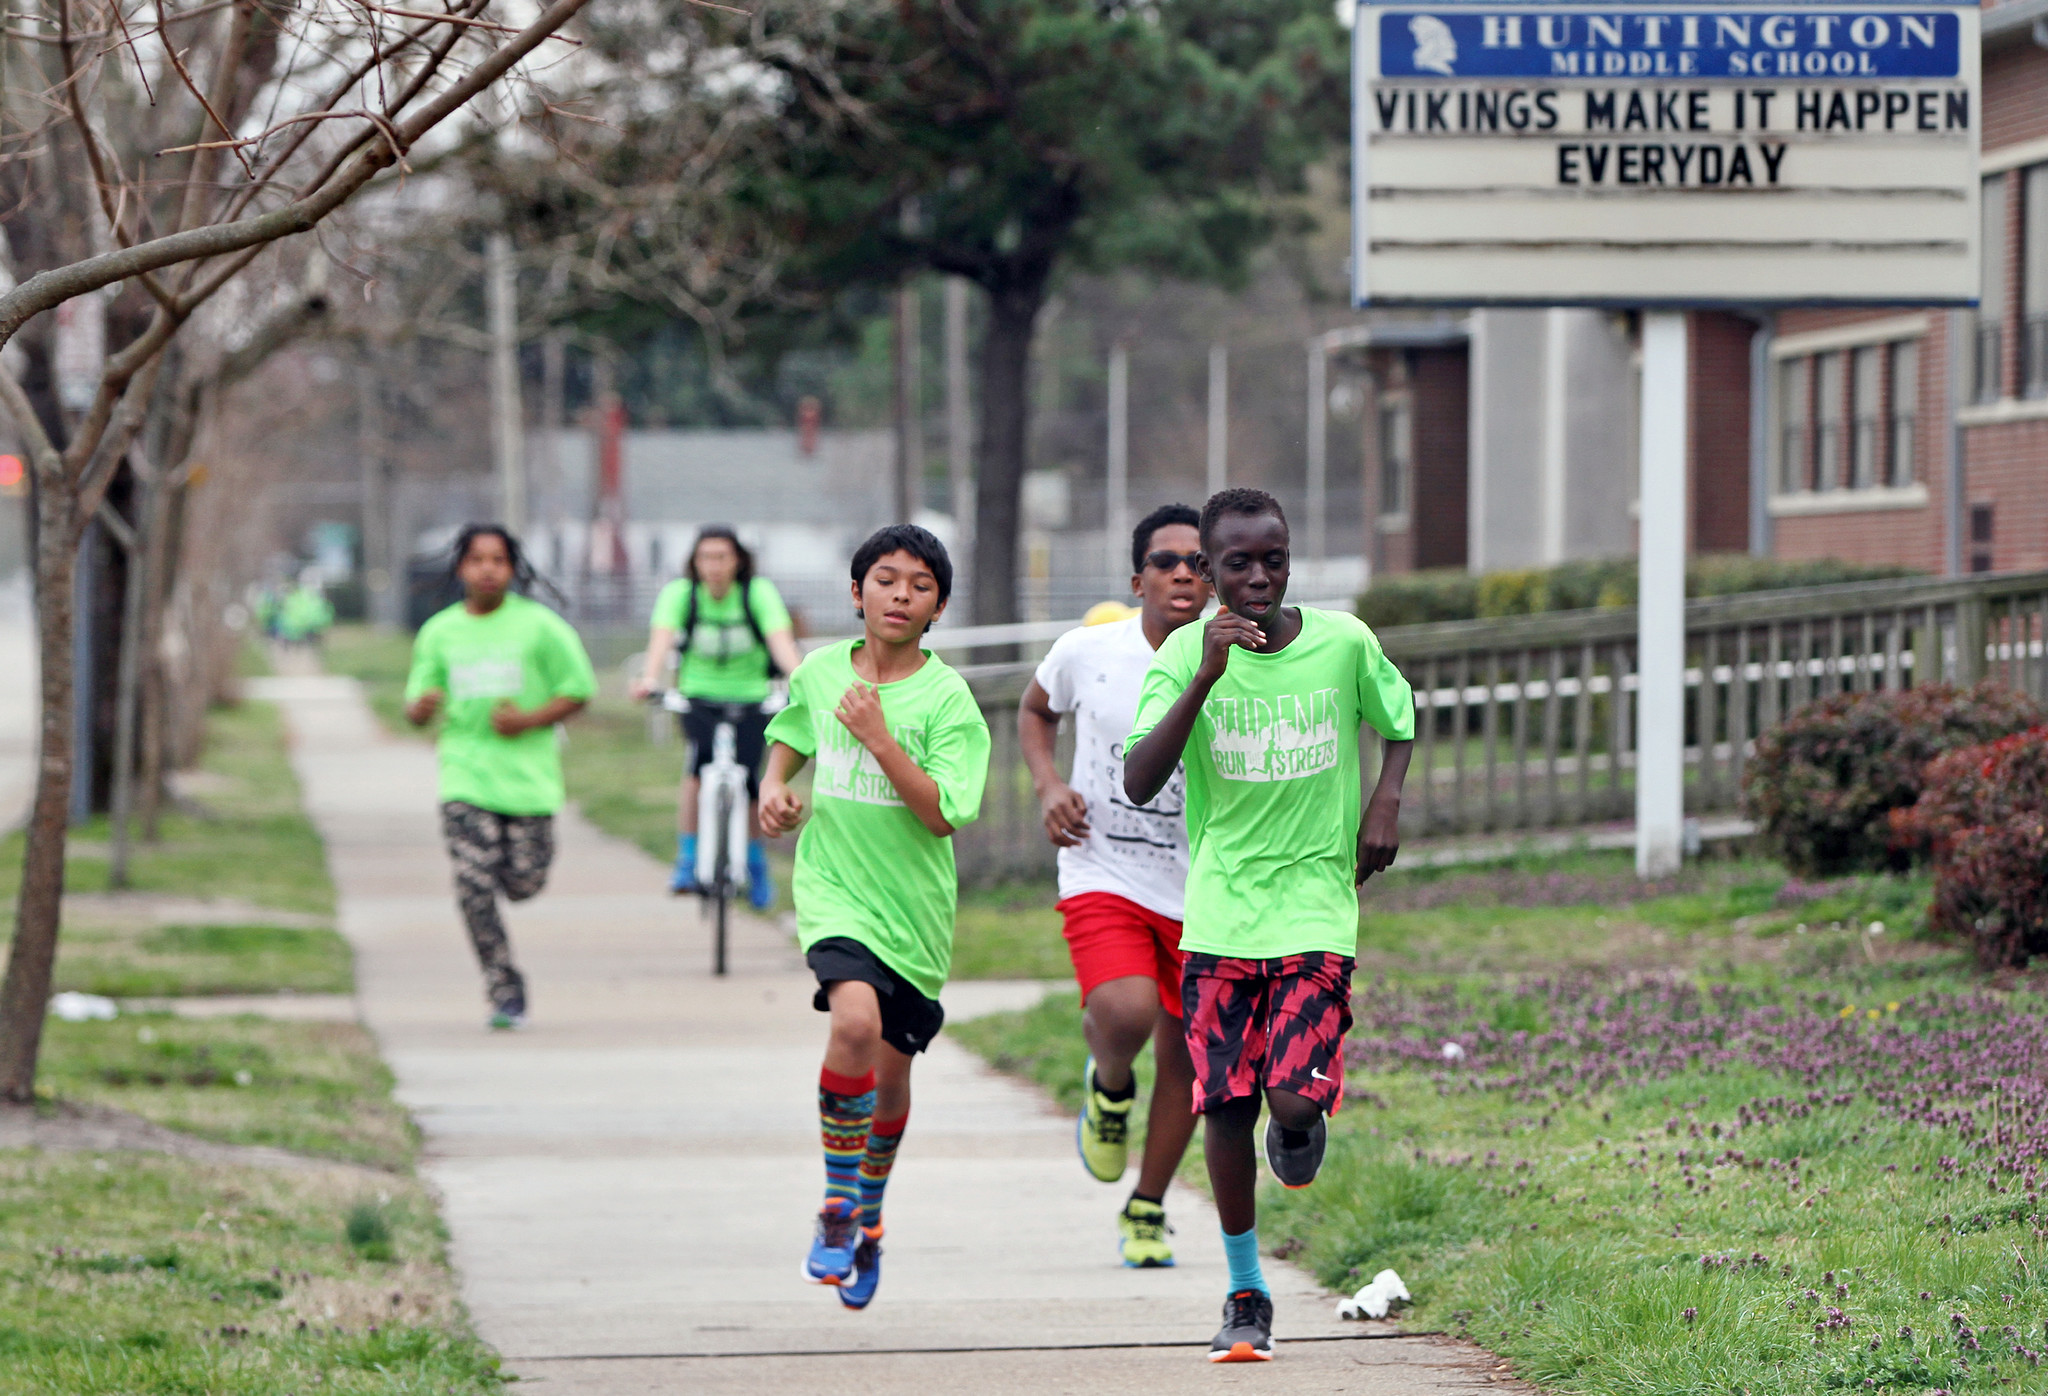 Pictures Students Run The Streets At Huntington Middle Daily Press